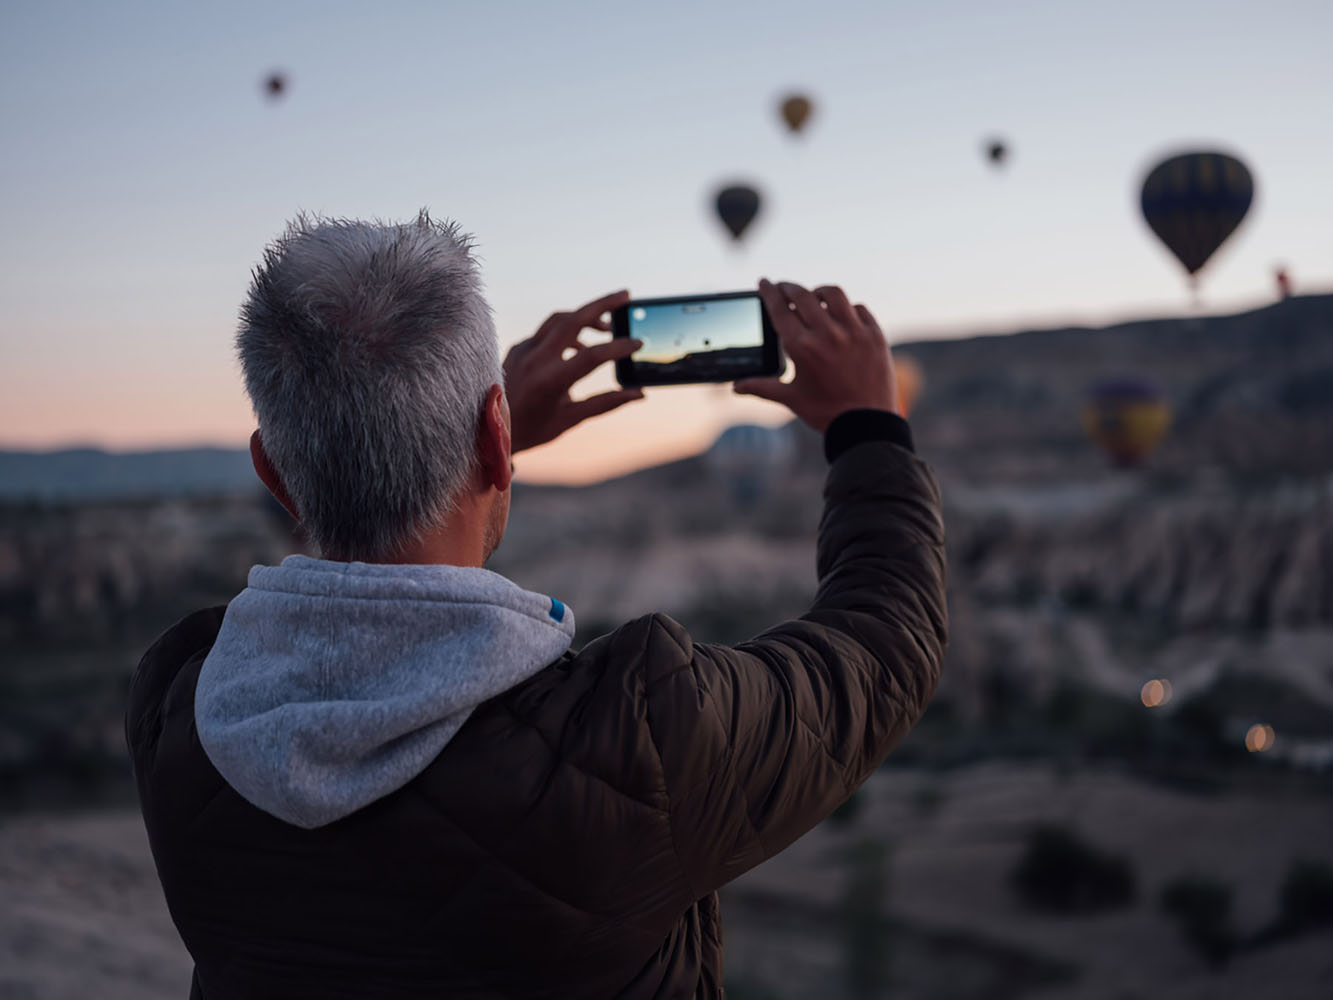 A man takes photos of hot air balloons using his phone